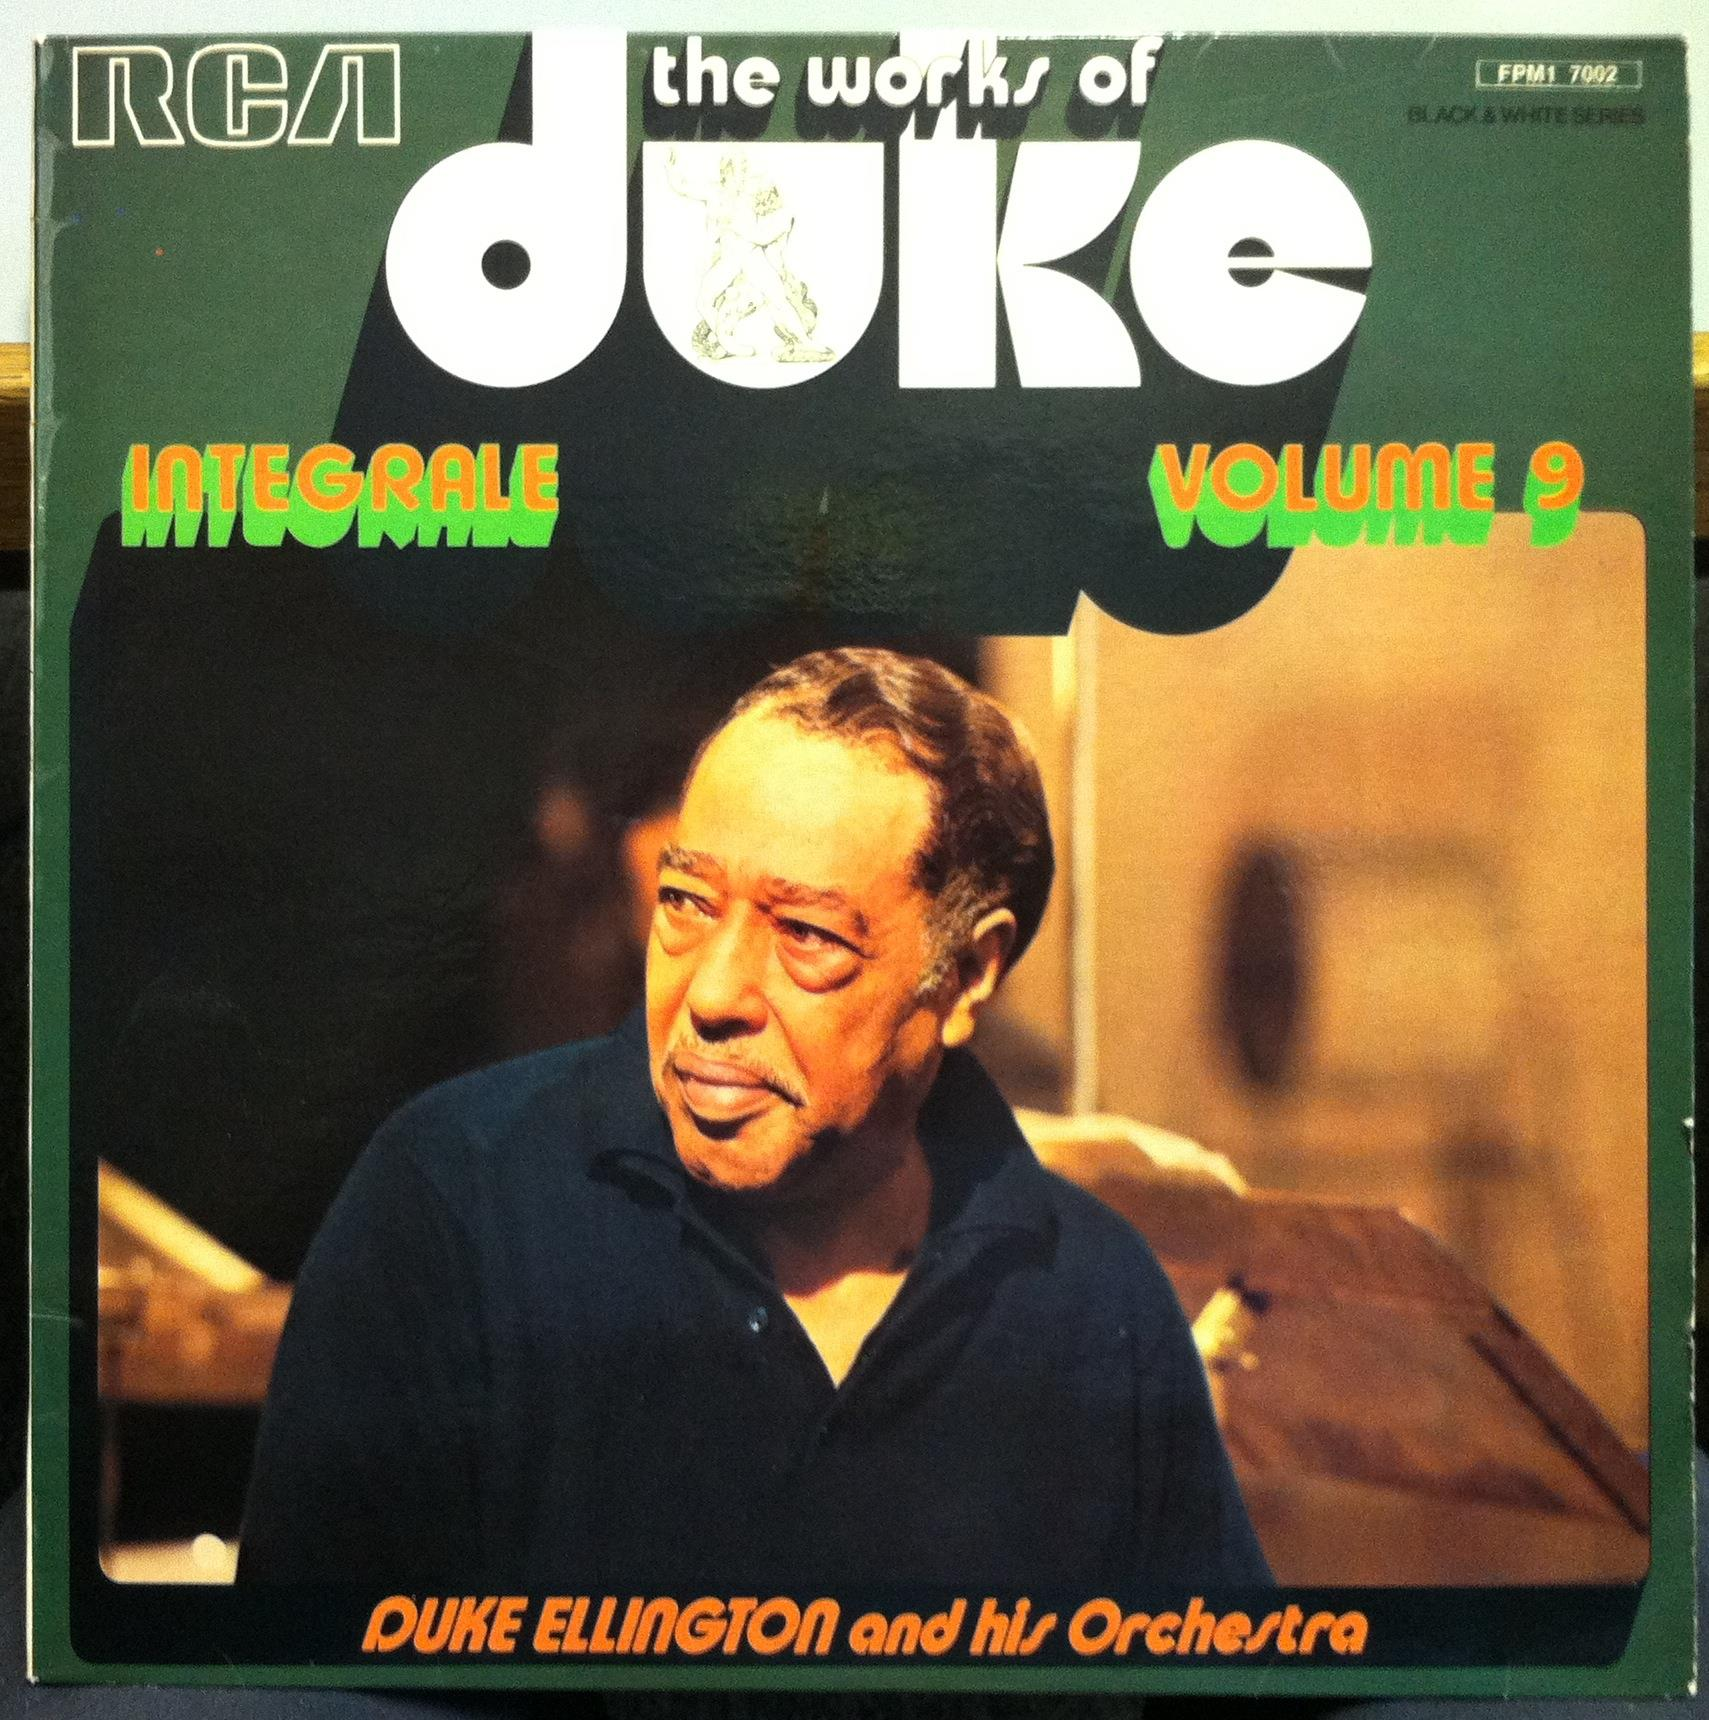 christian singles in ellington Find duke ellington discography, albums and singles on allmusic.